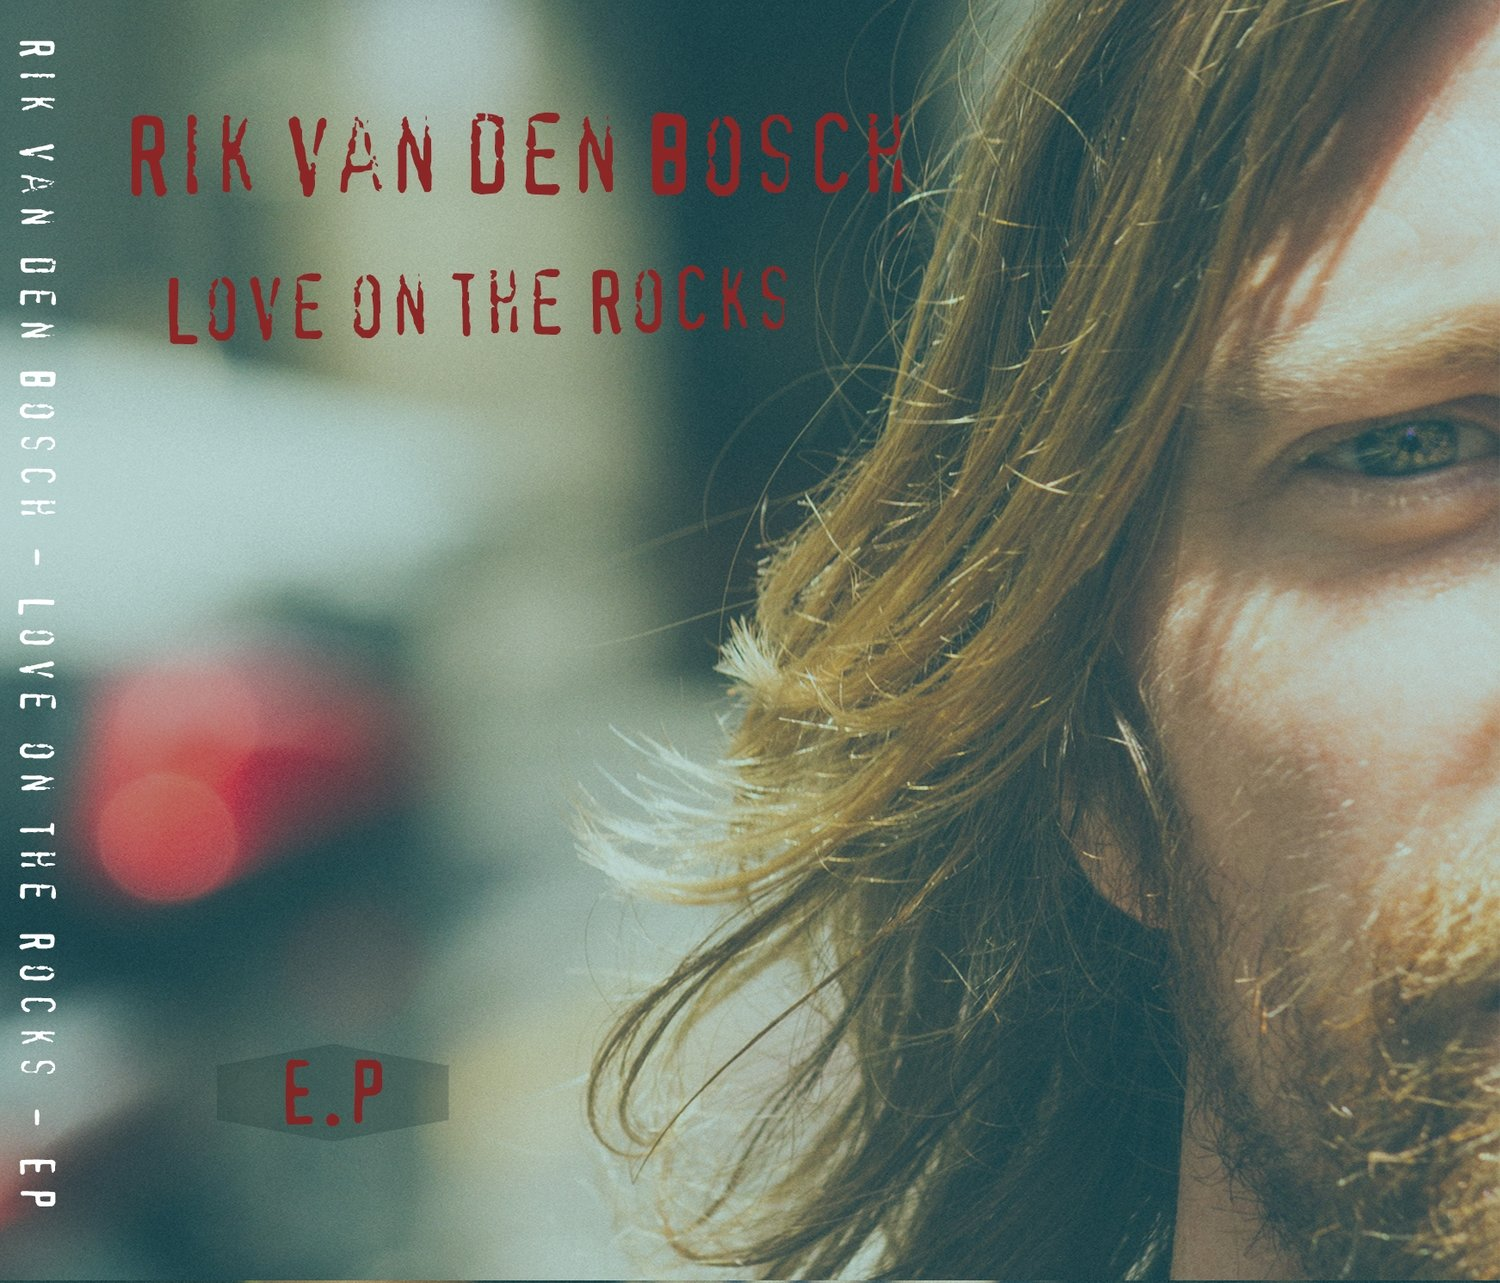 Love on the rocks EP on CD